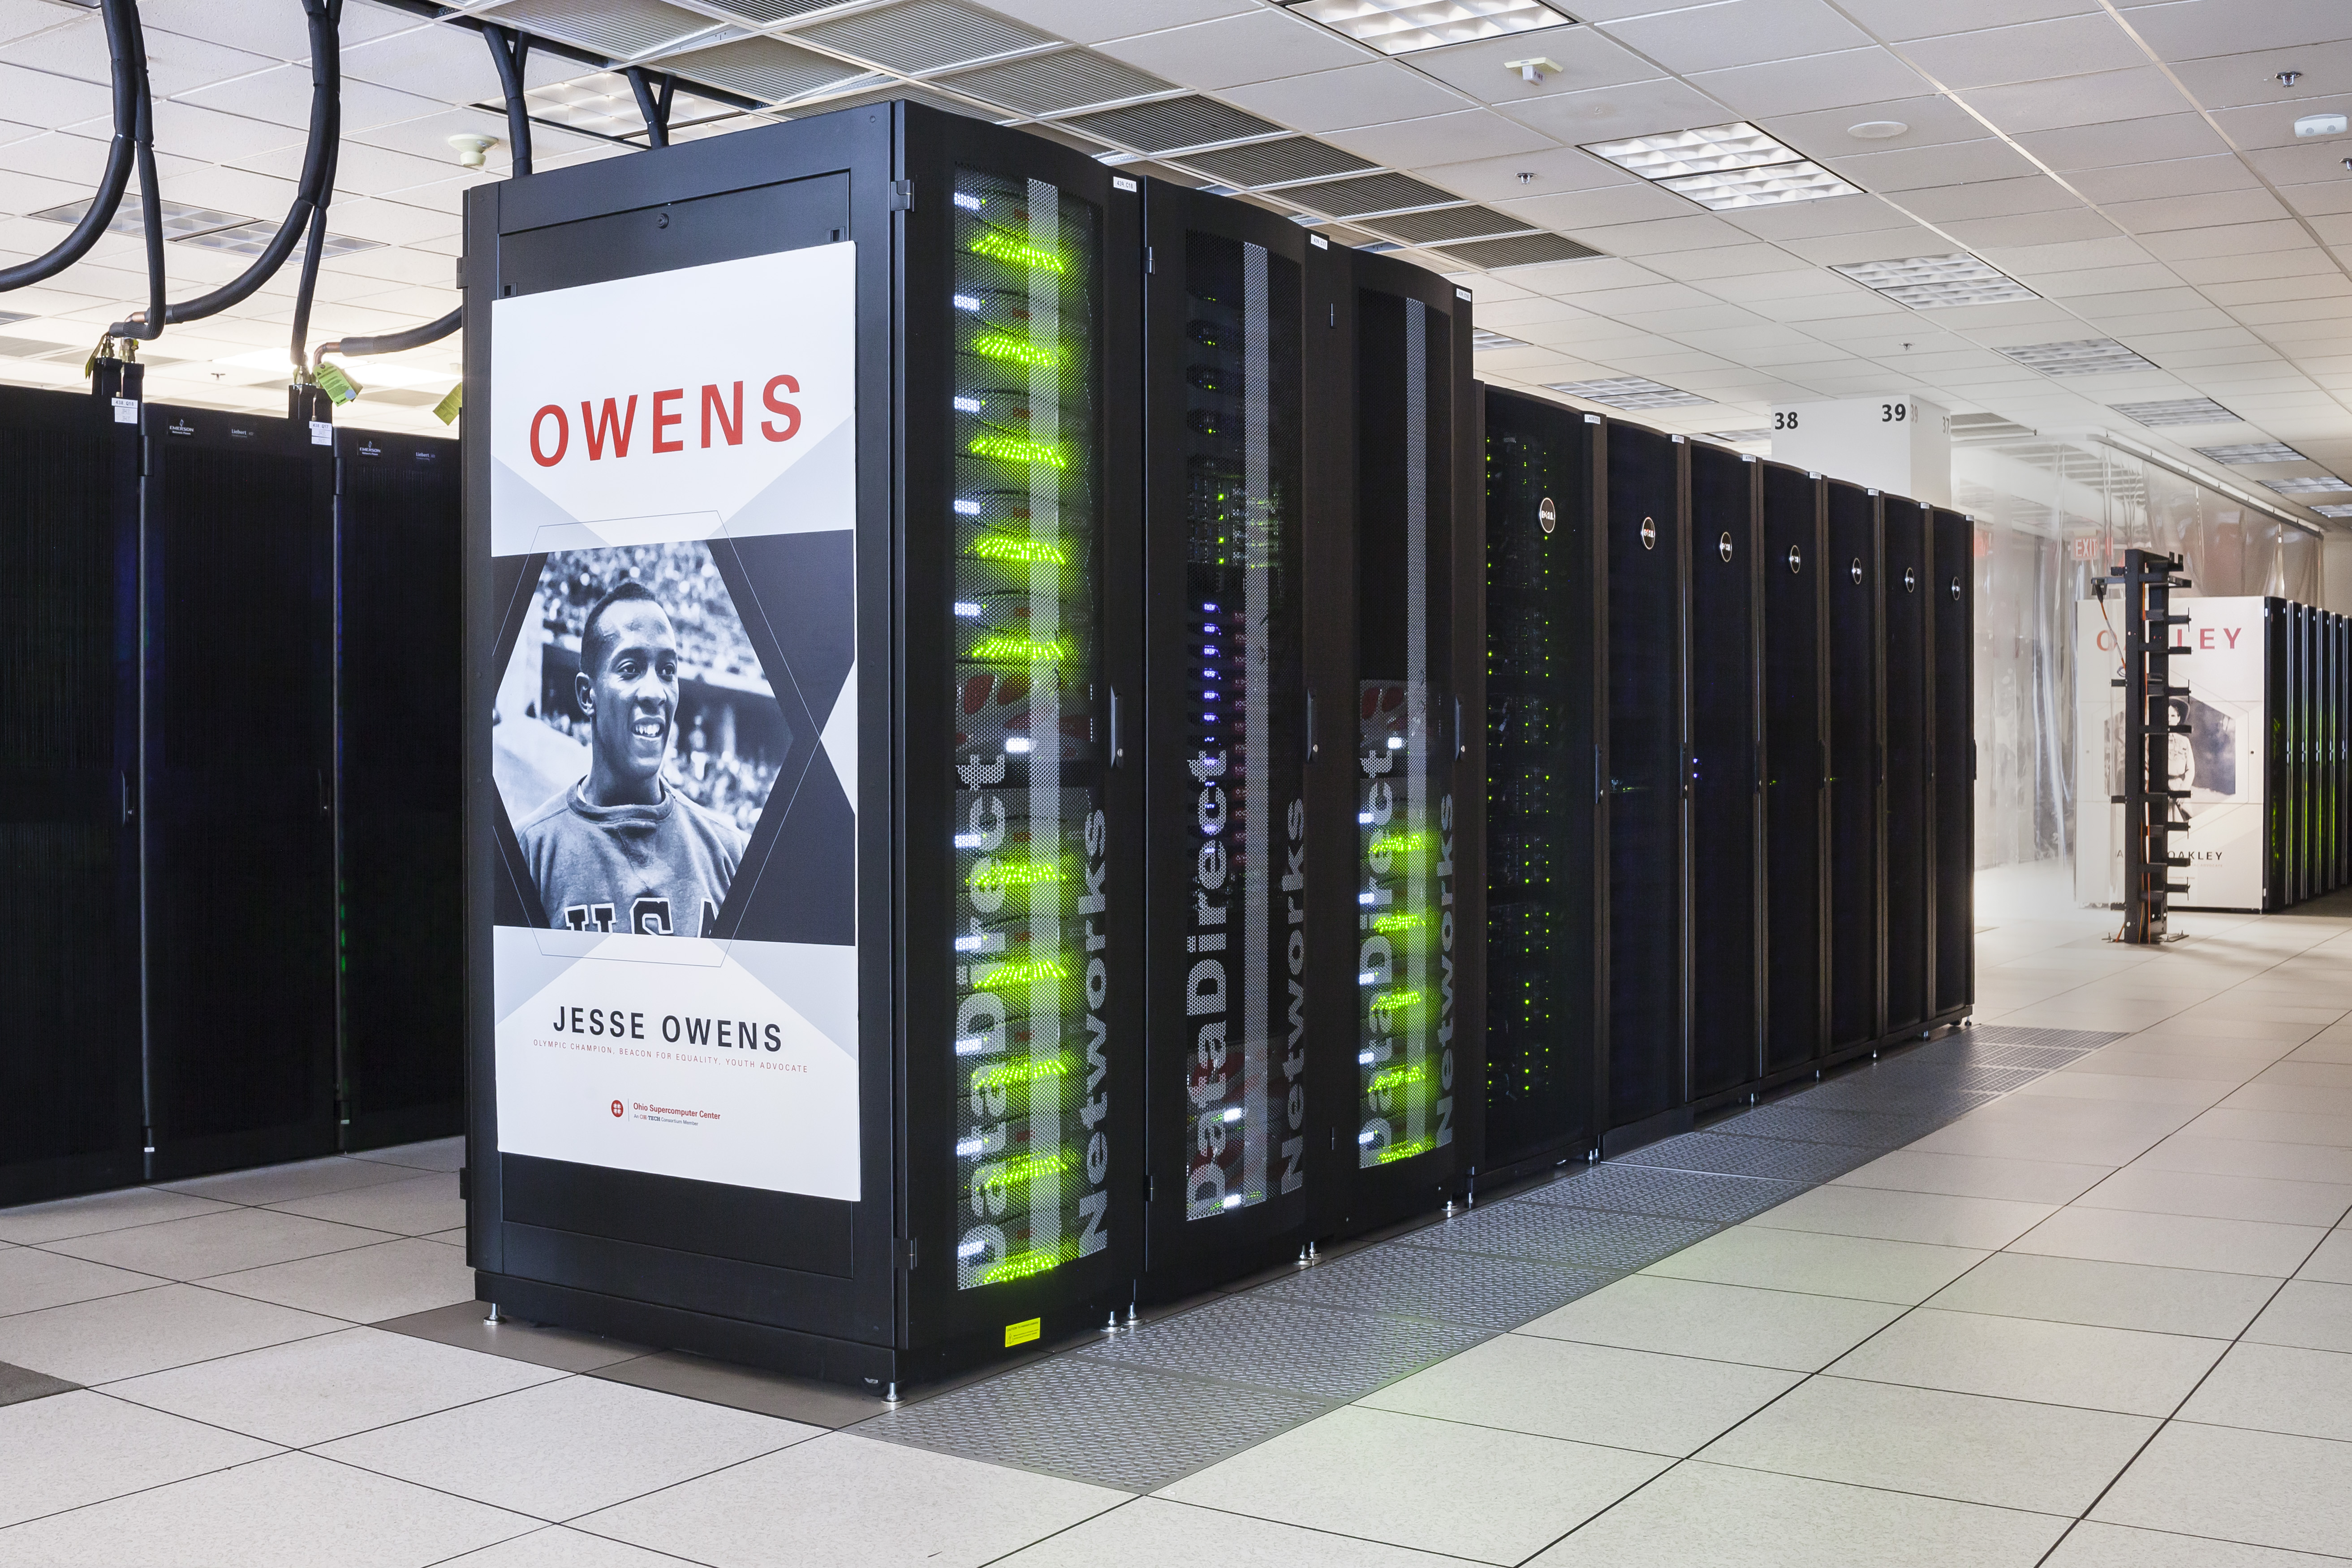 The Dell/Intel Owens Cluster at OSC